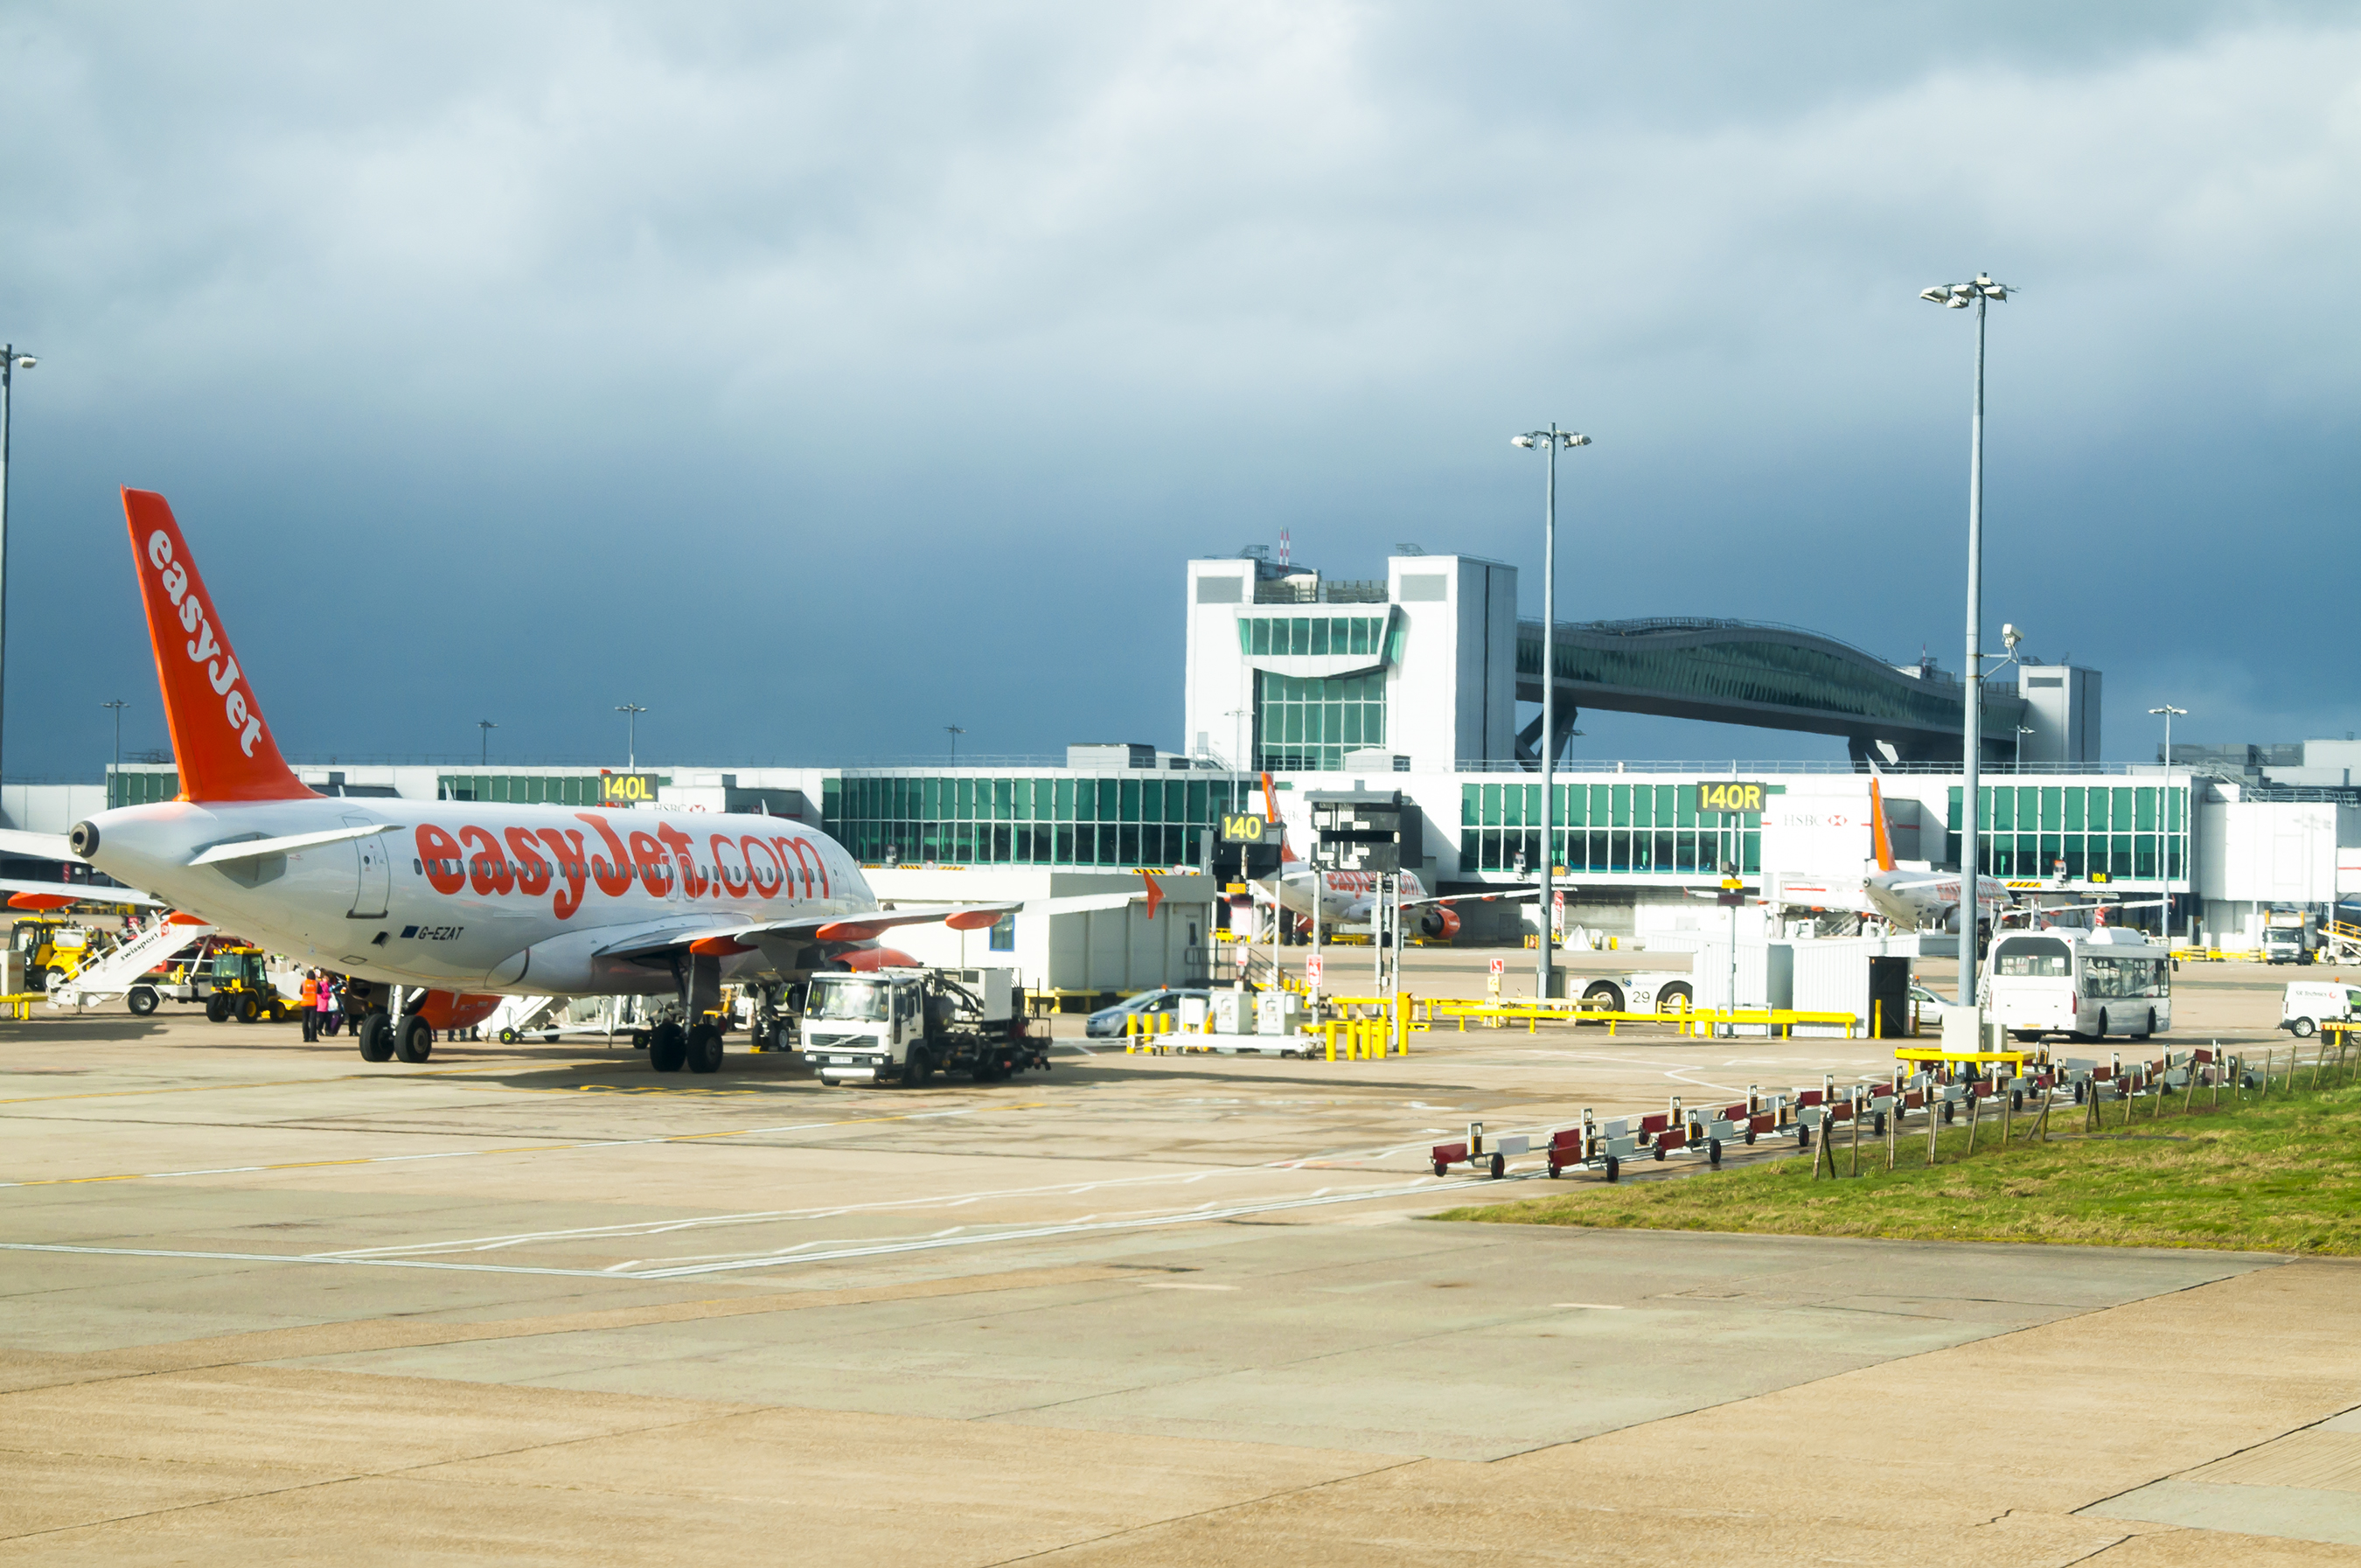 Flights delayed as main runway at gatwick airport closed